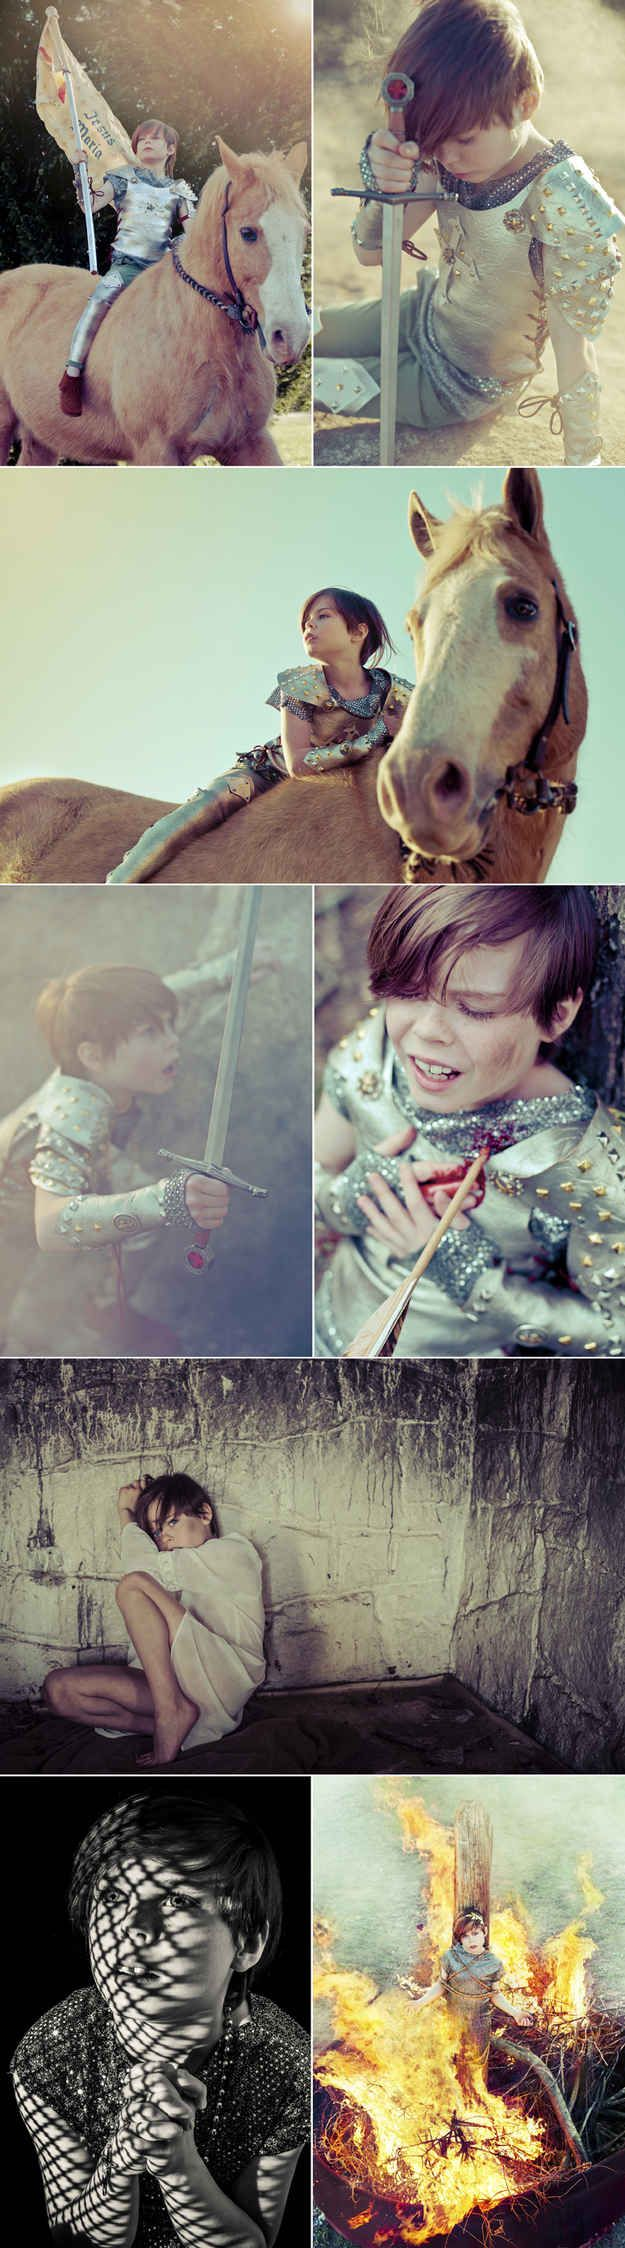 Joan of Arc amazing cosplay created by a third grader!